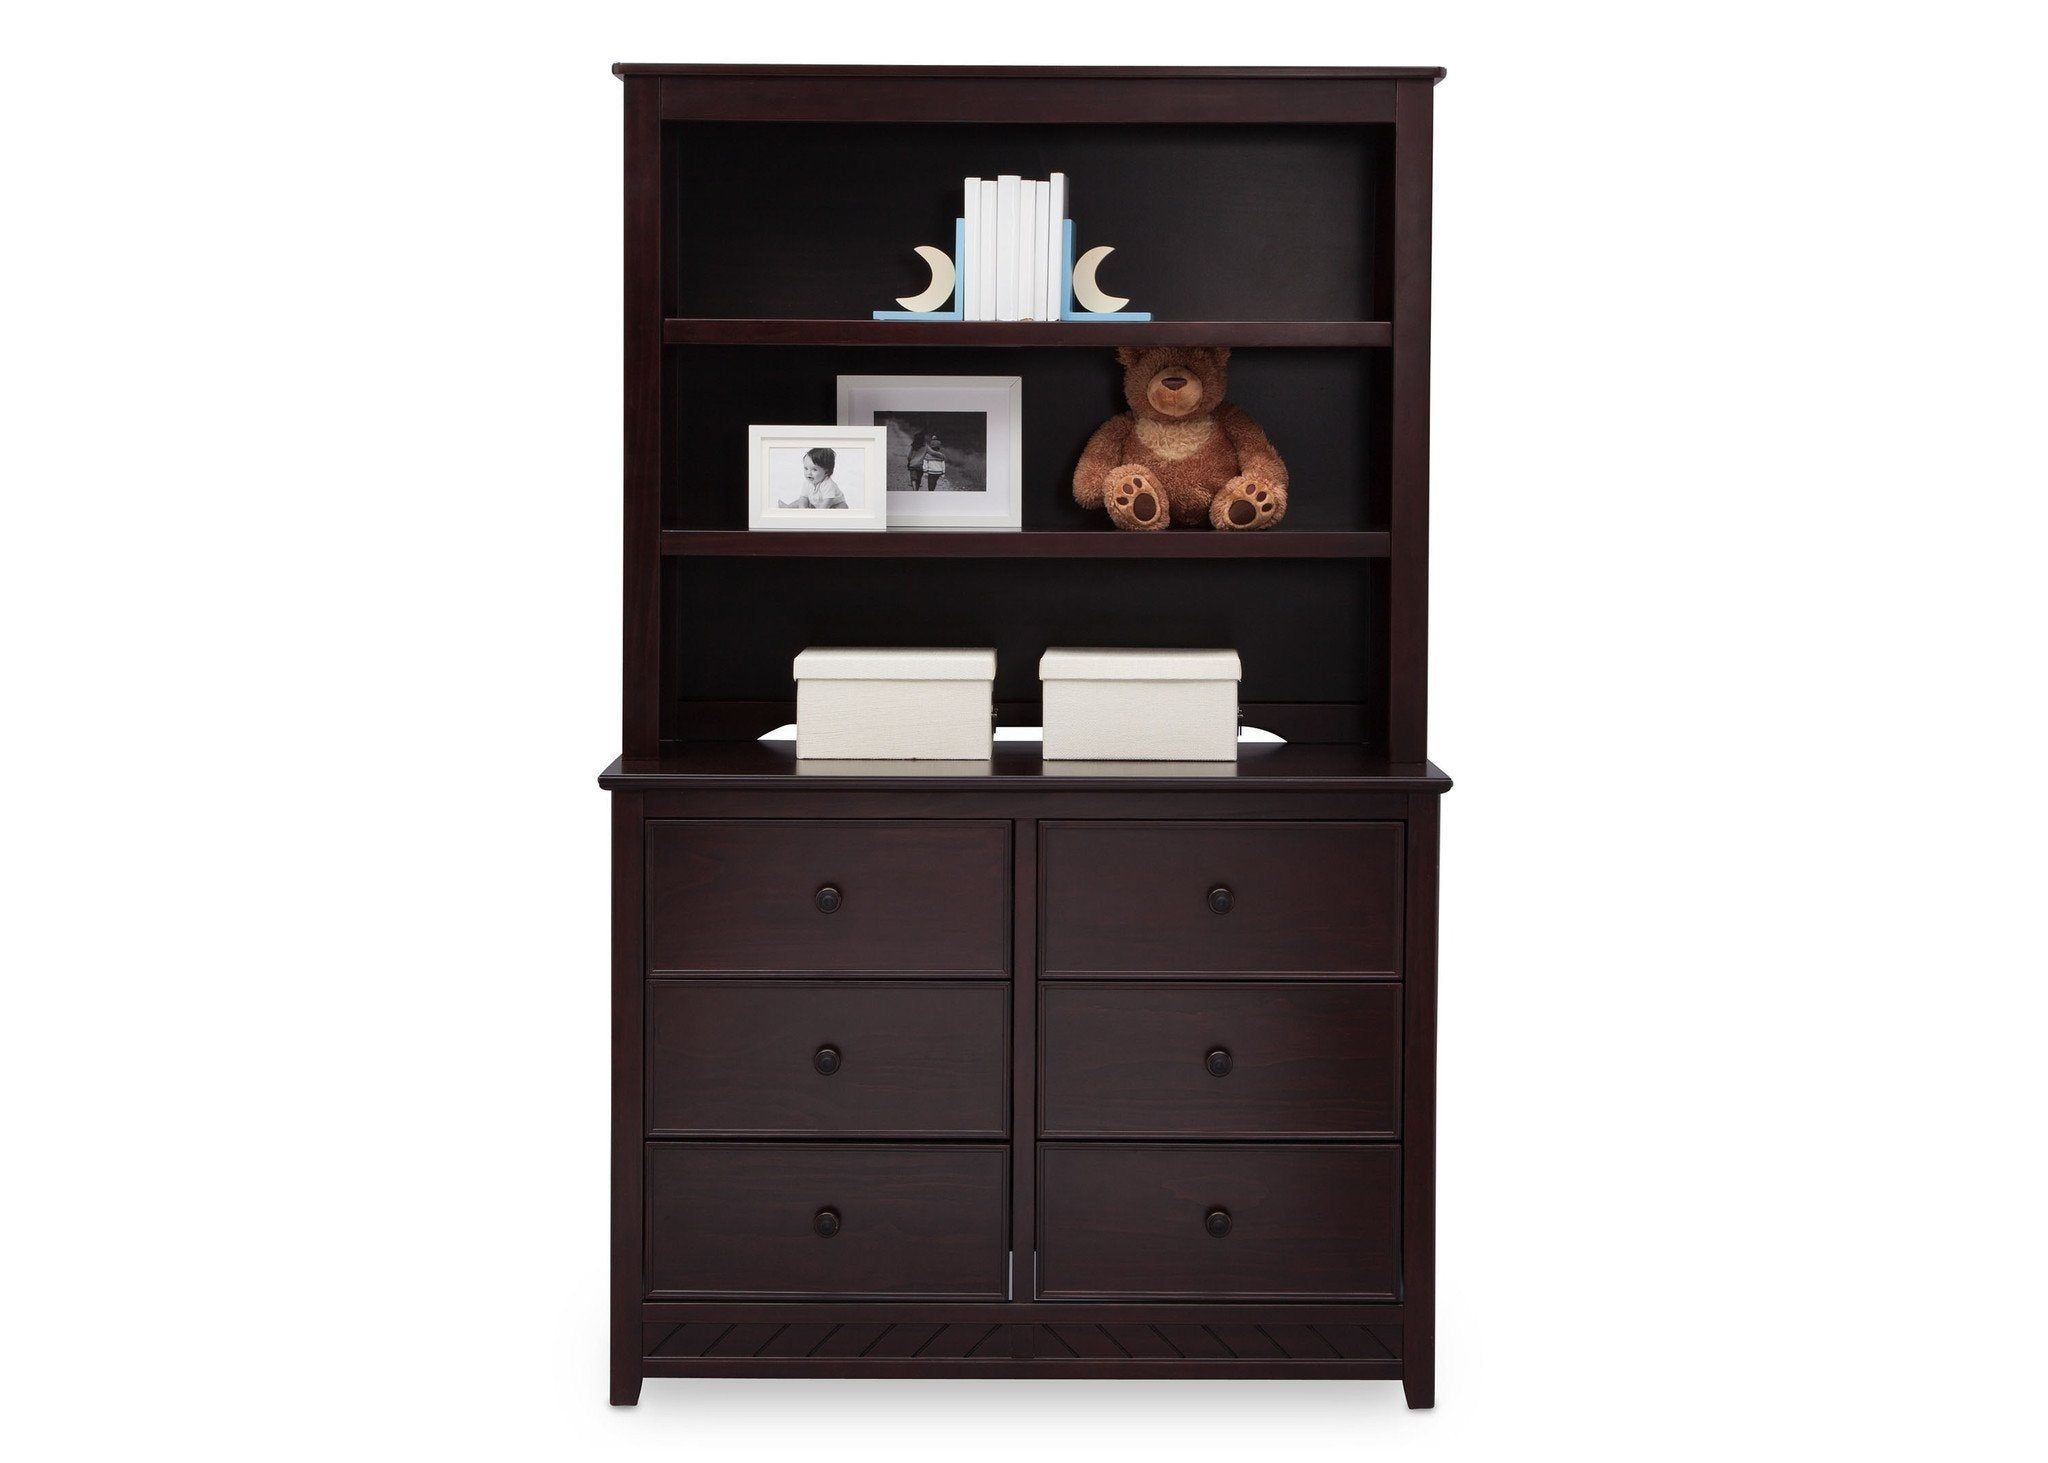 Bennington Elite Bookcase Hutch Delta Children